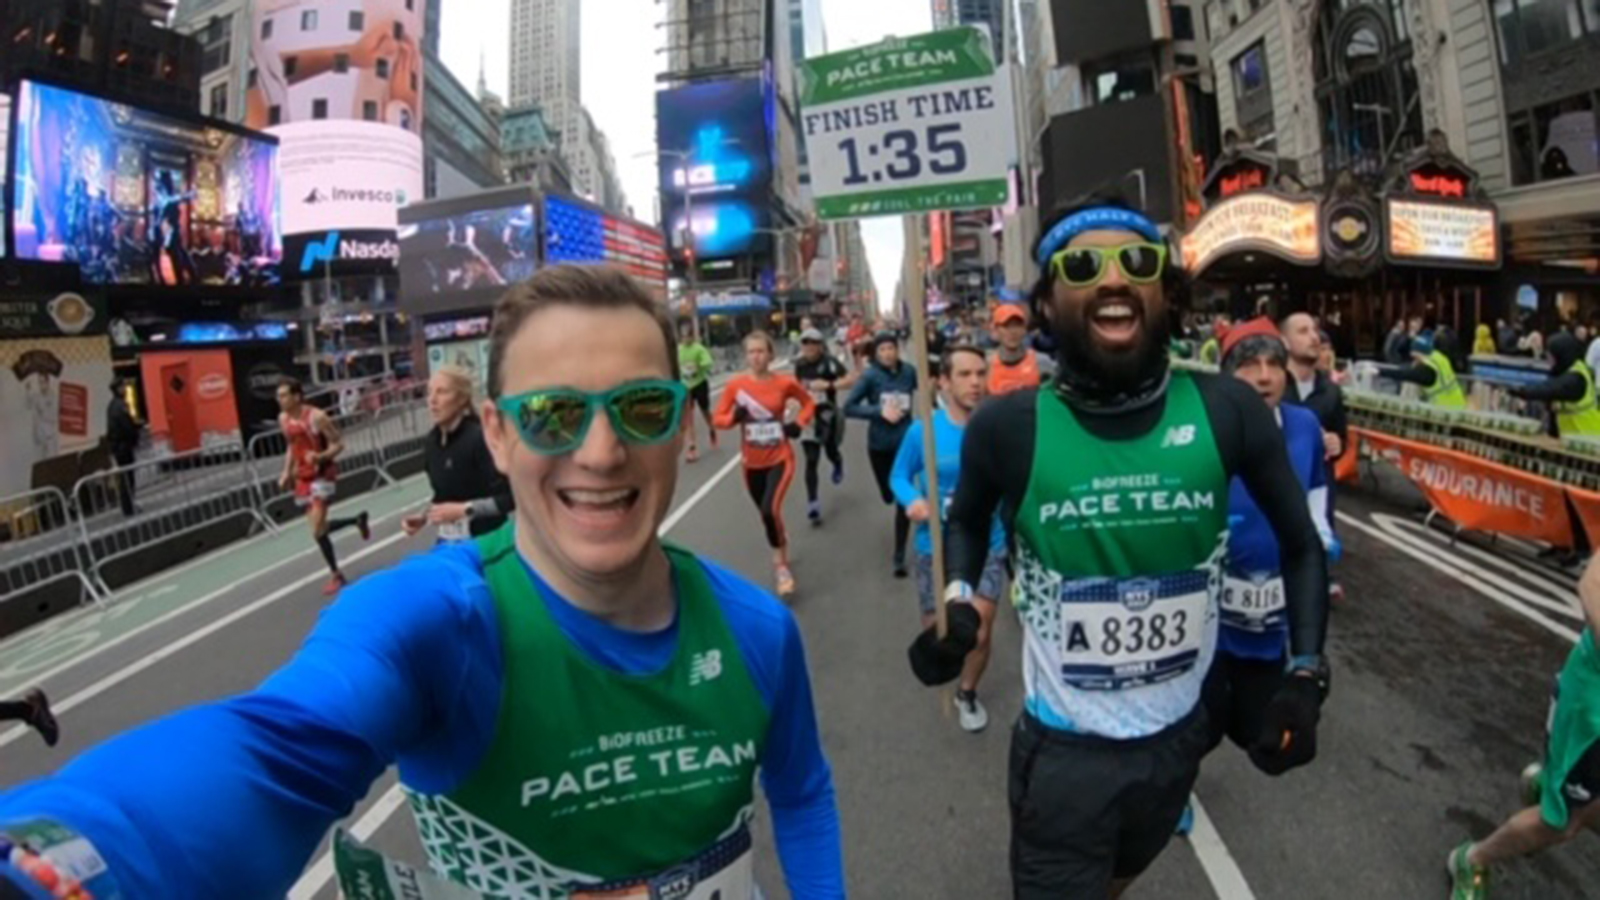 NYRR Pace Team members Stephen England and Devang Patel running through Times Square